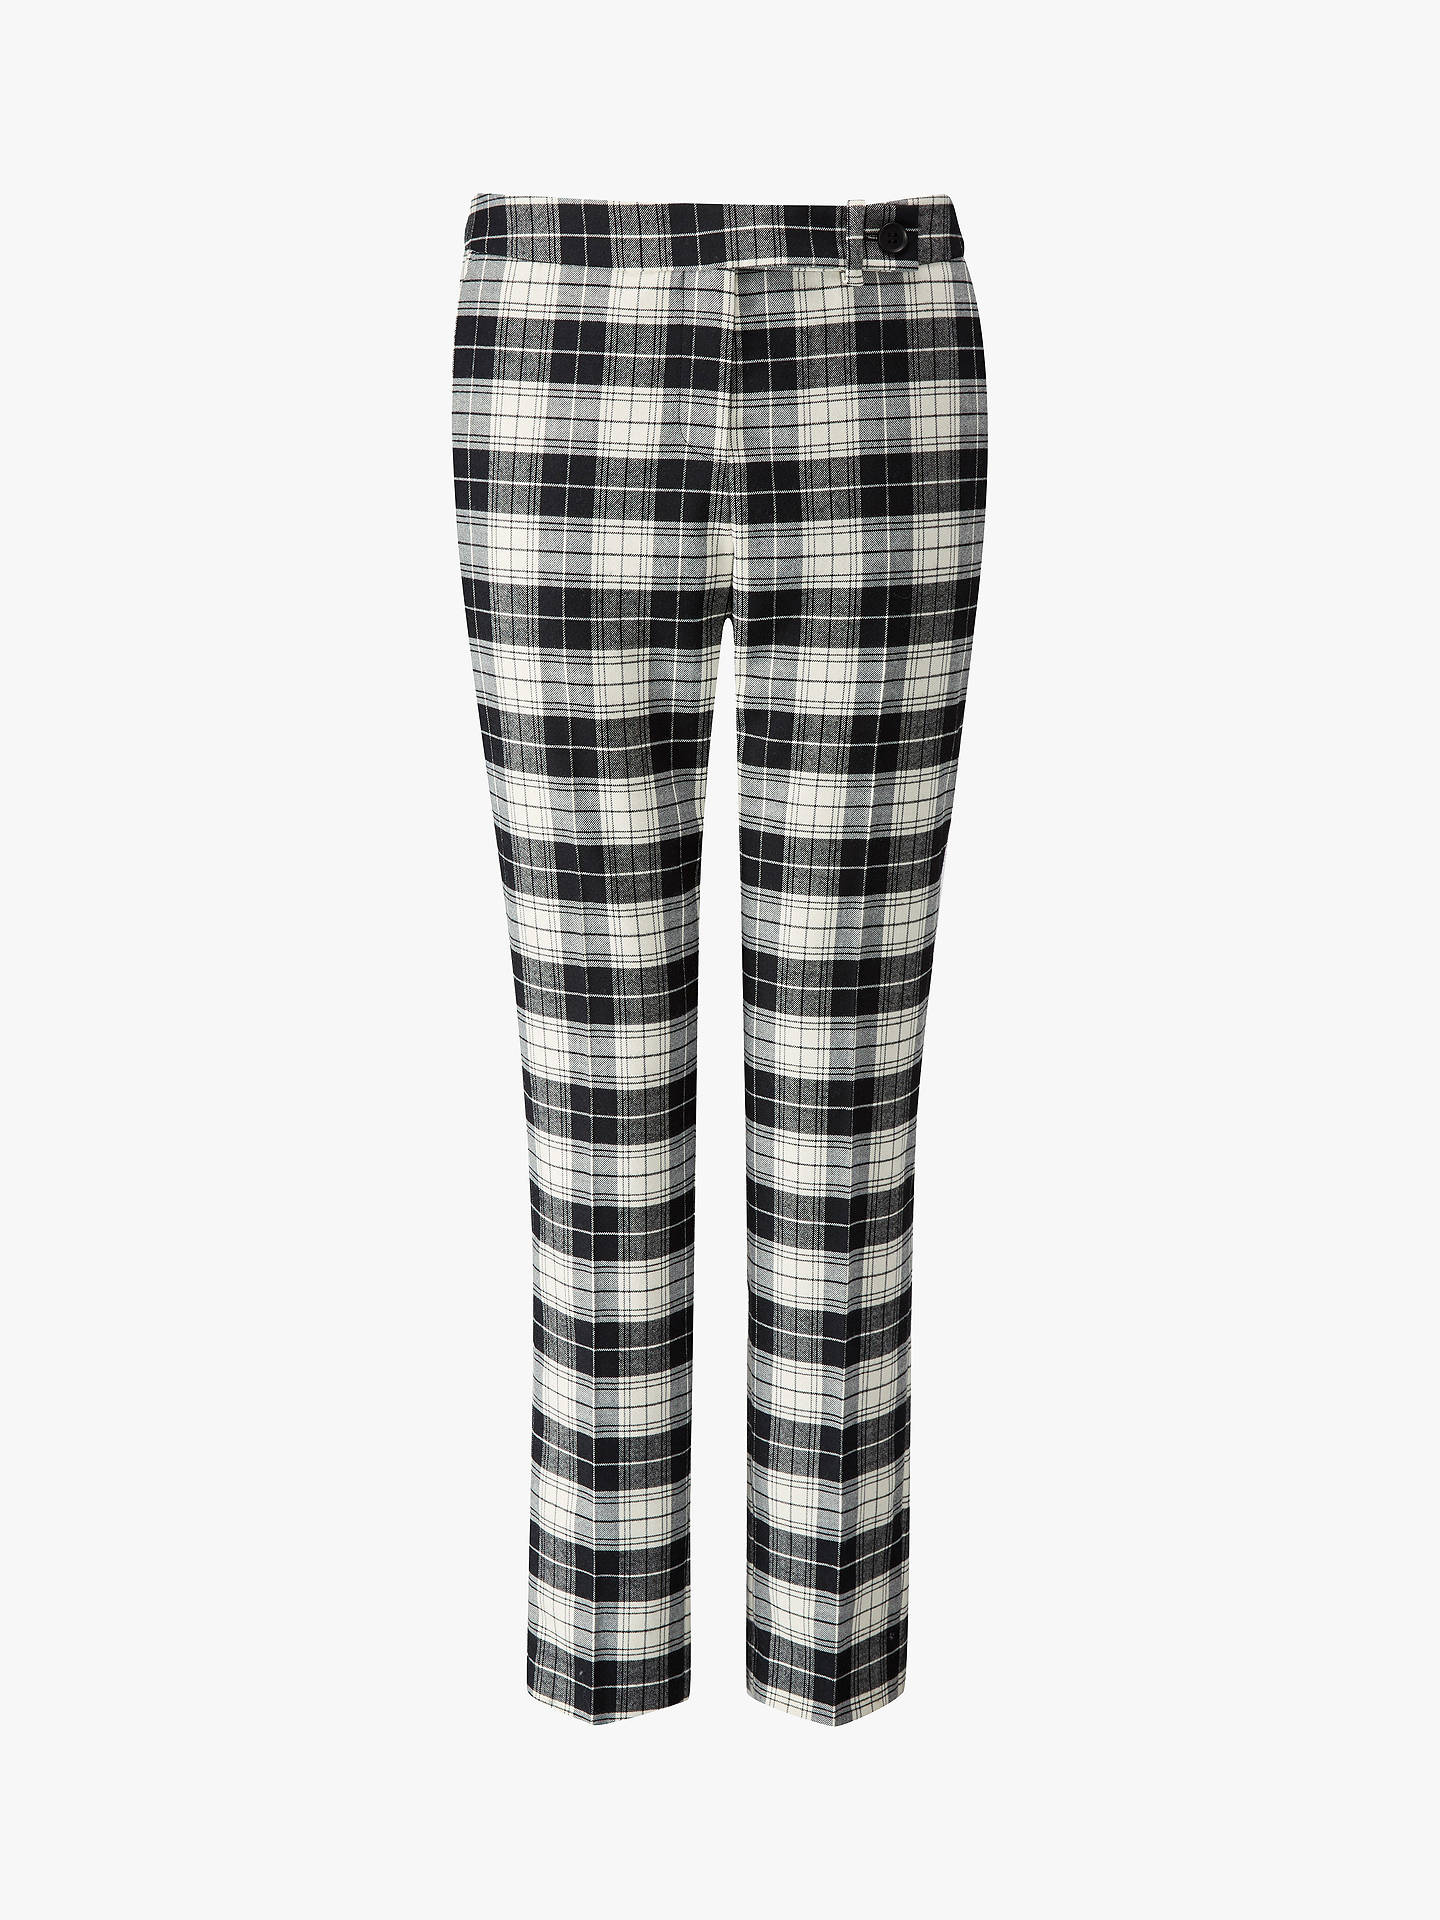 BuyPure Collection Tailored Ankle Length Trousers, Black/Ivory, 10 Online at johnlewis.com